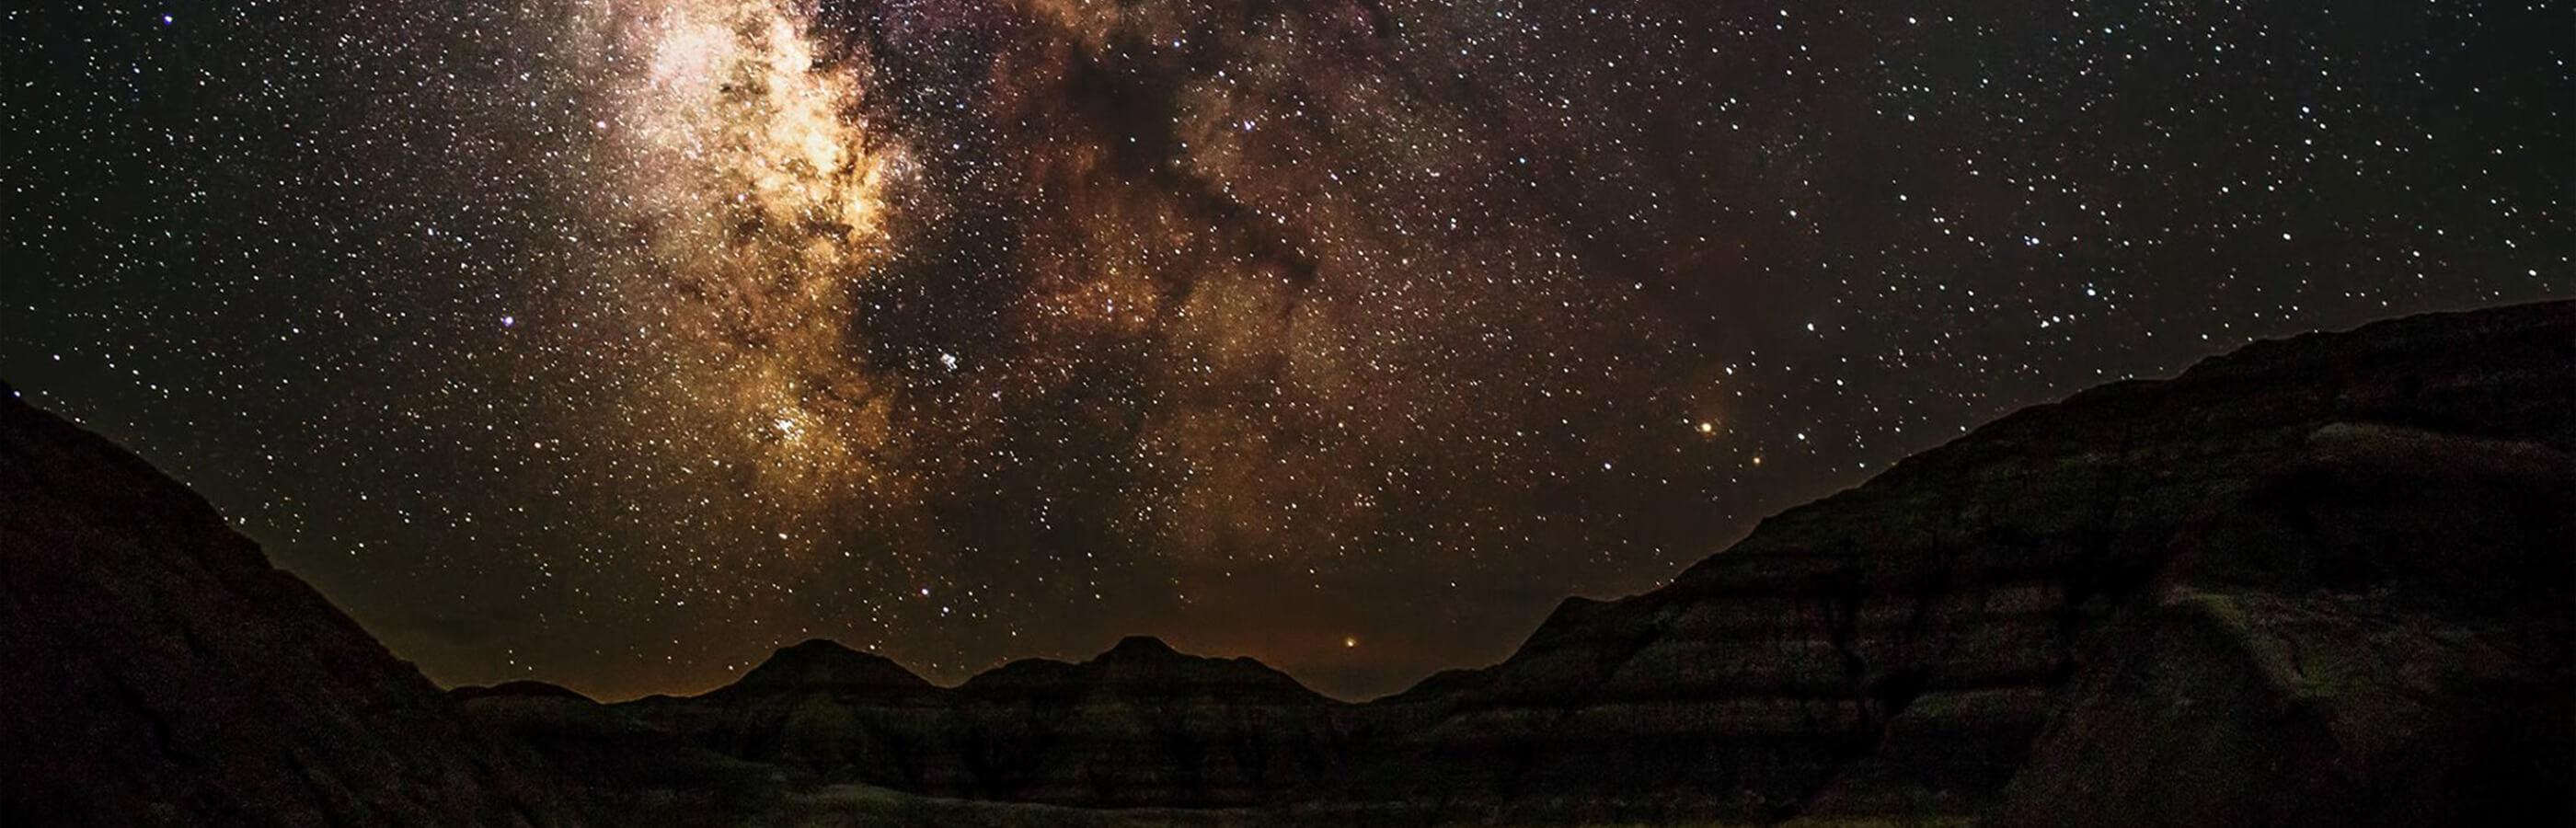 Milky way Star Photography at Badlands National Park